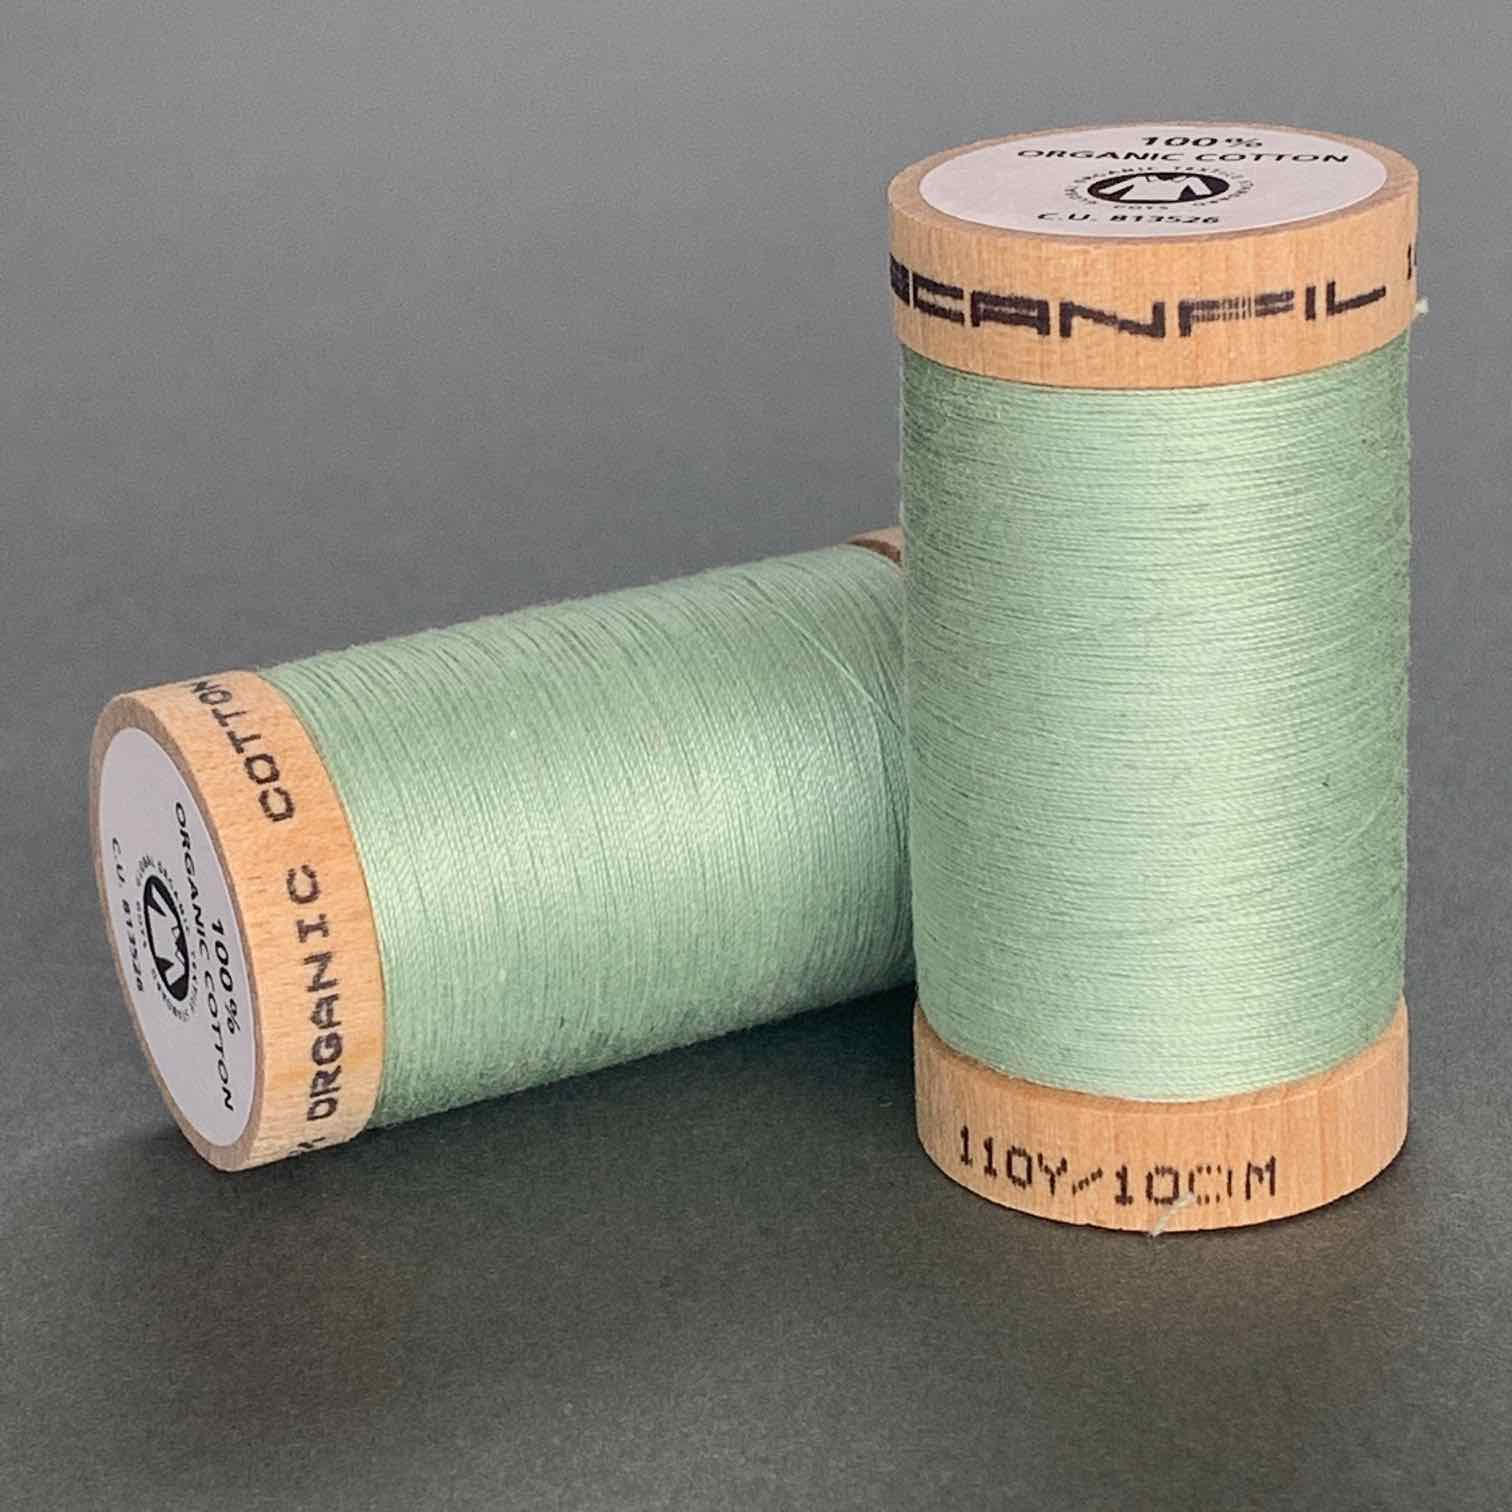 Scanfil Organic Cotton Sewing Thread Mint Green